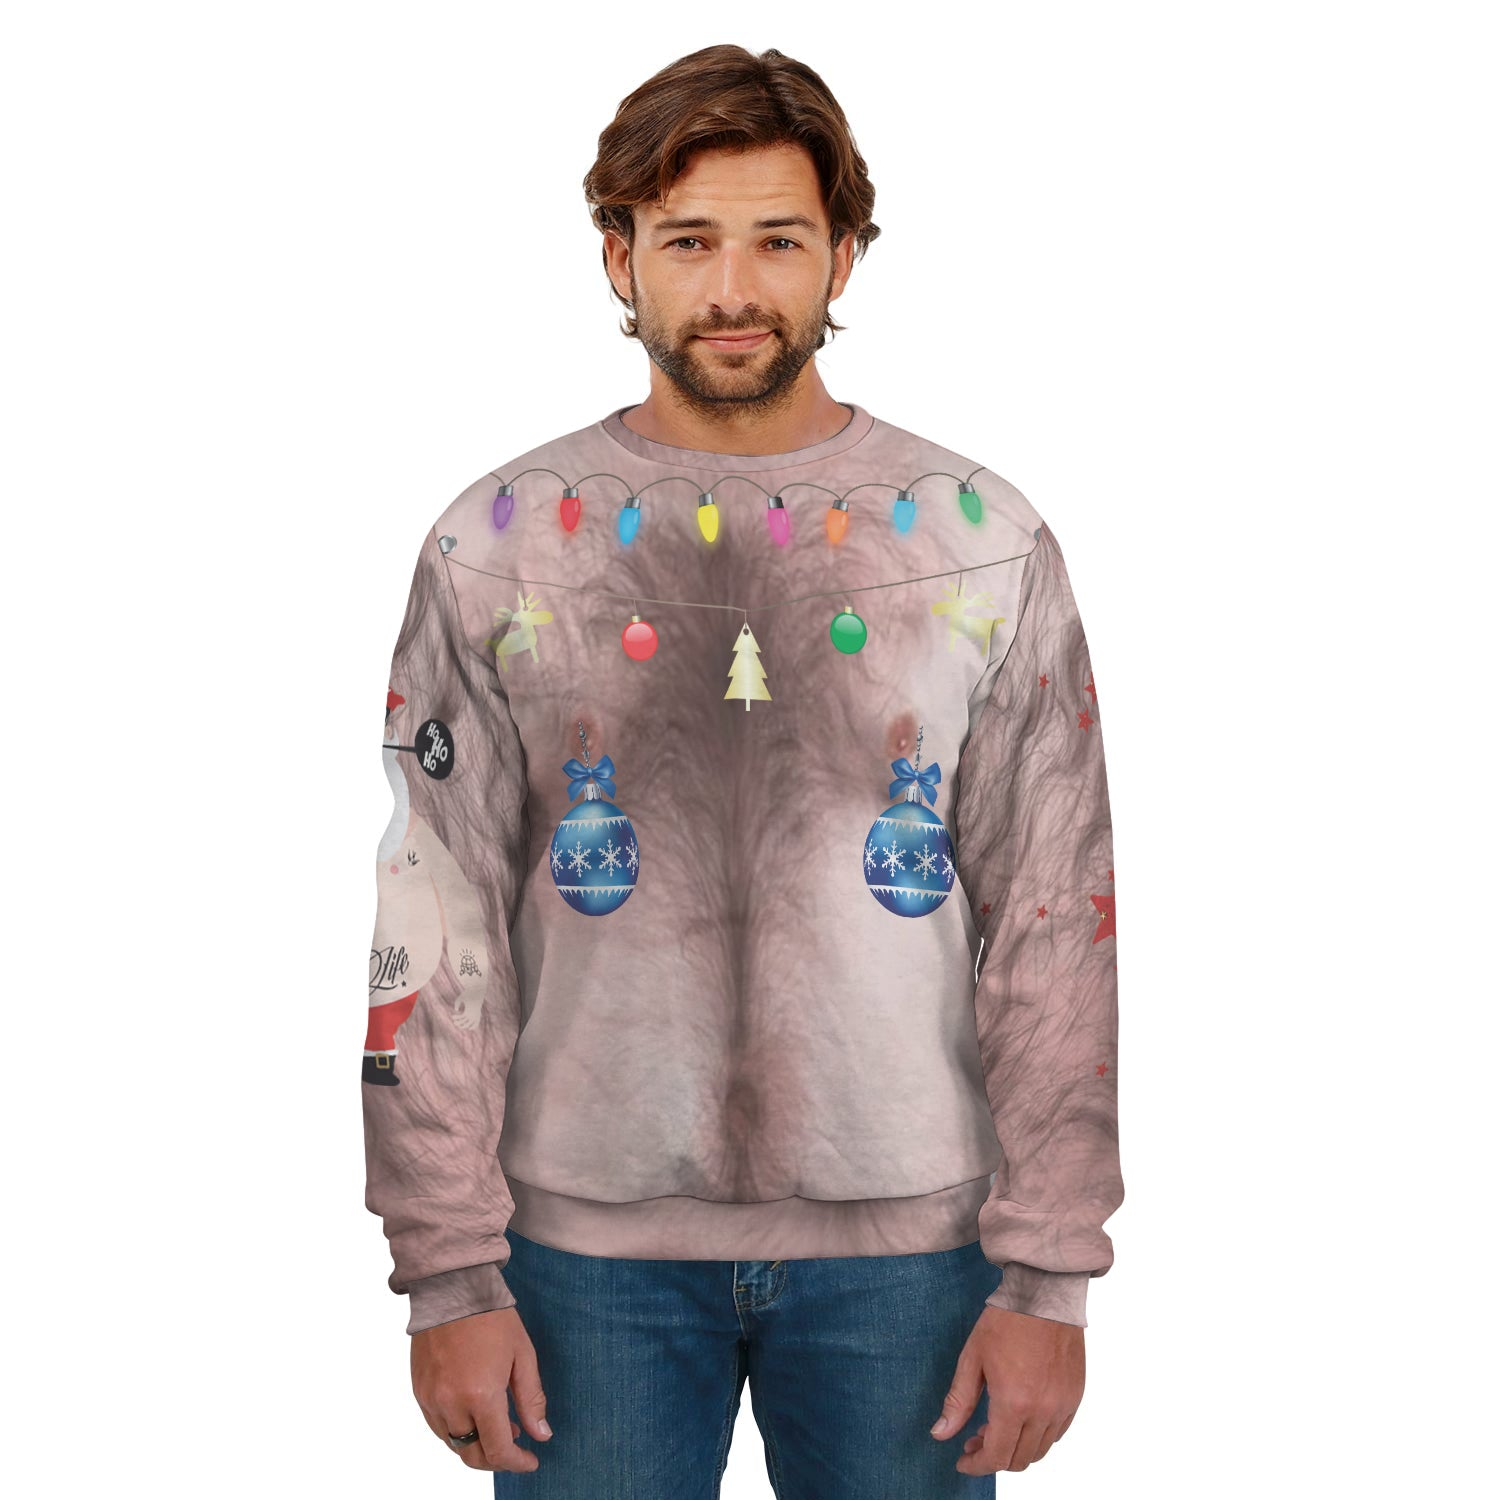 Festive Hairy Man Ugly Christmas Sweater